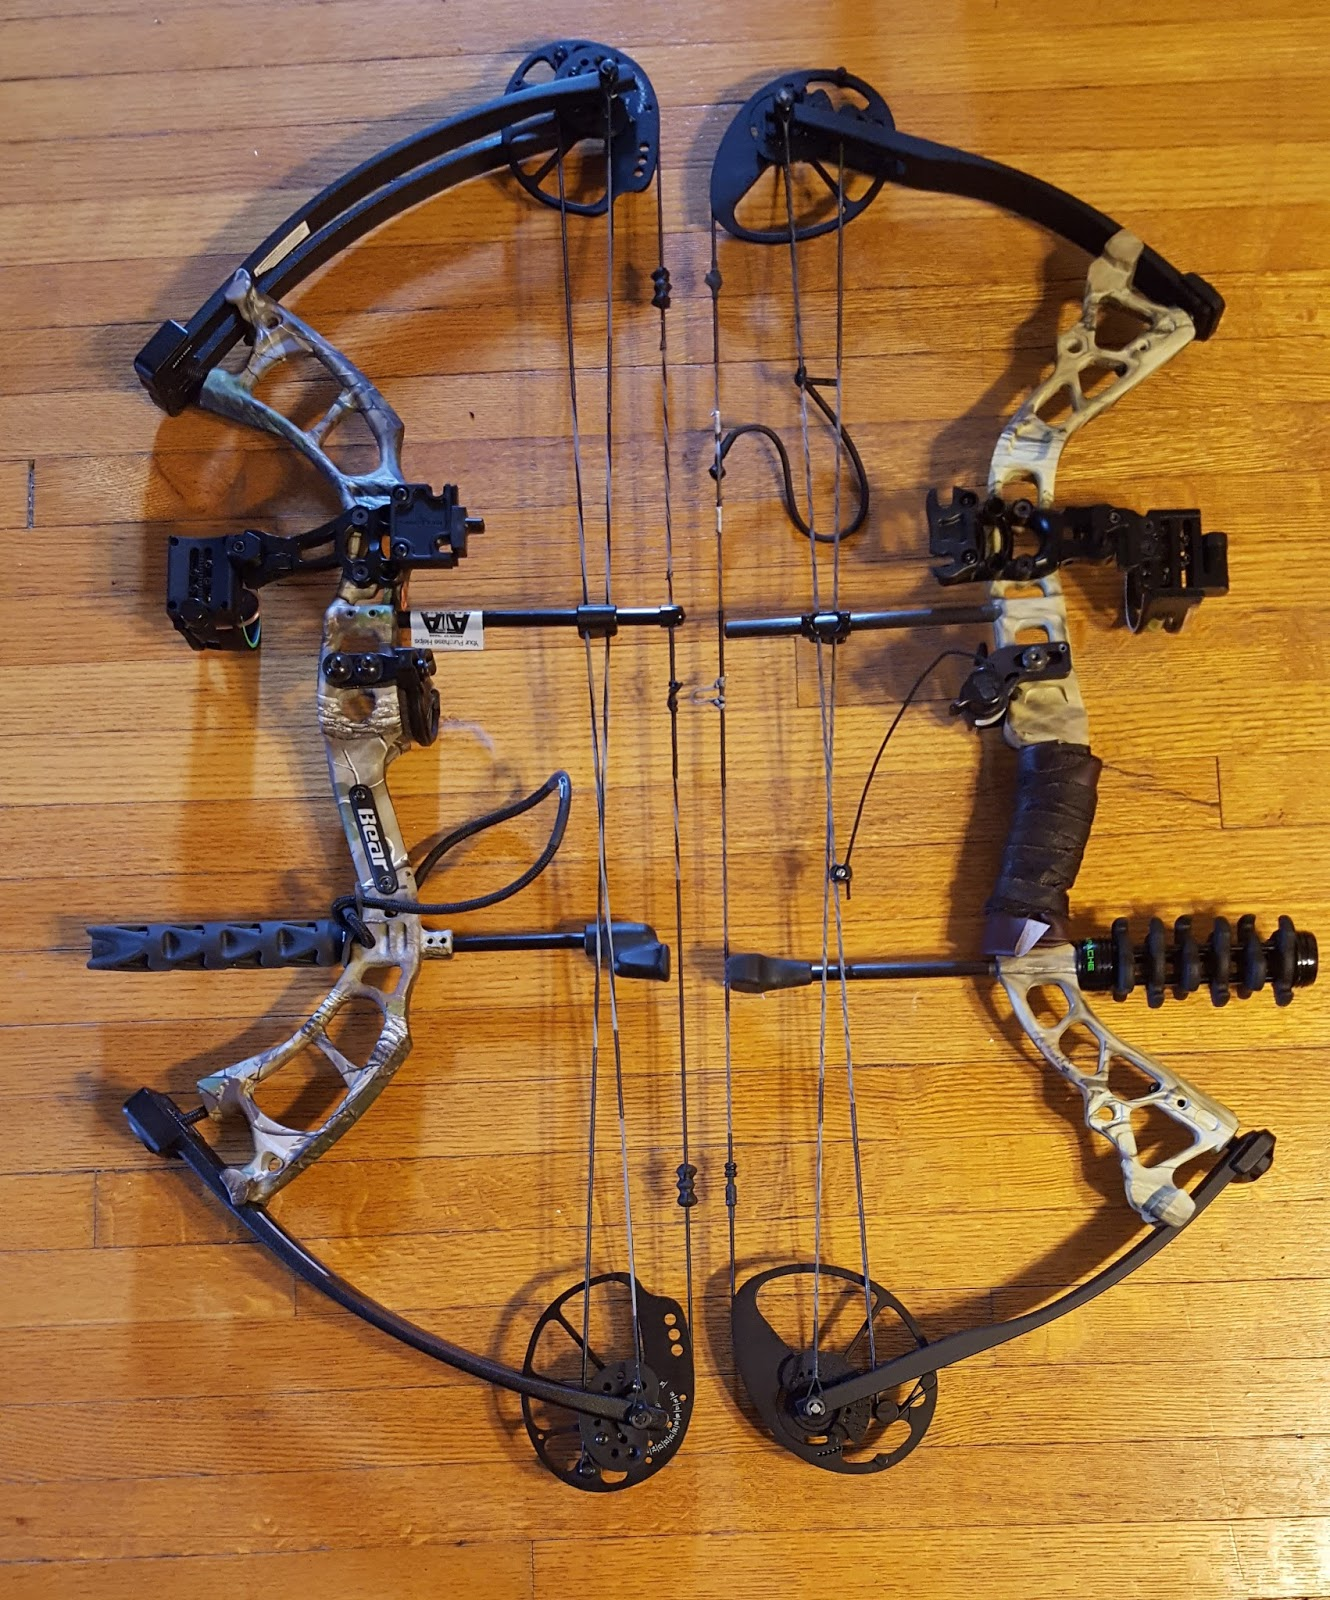 Project Gridless: Compounds Bows Vs Recurve Bows, which is Better?